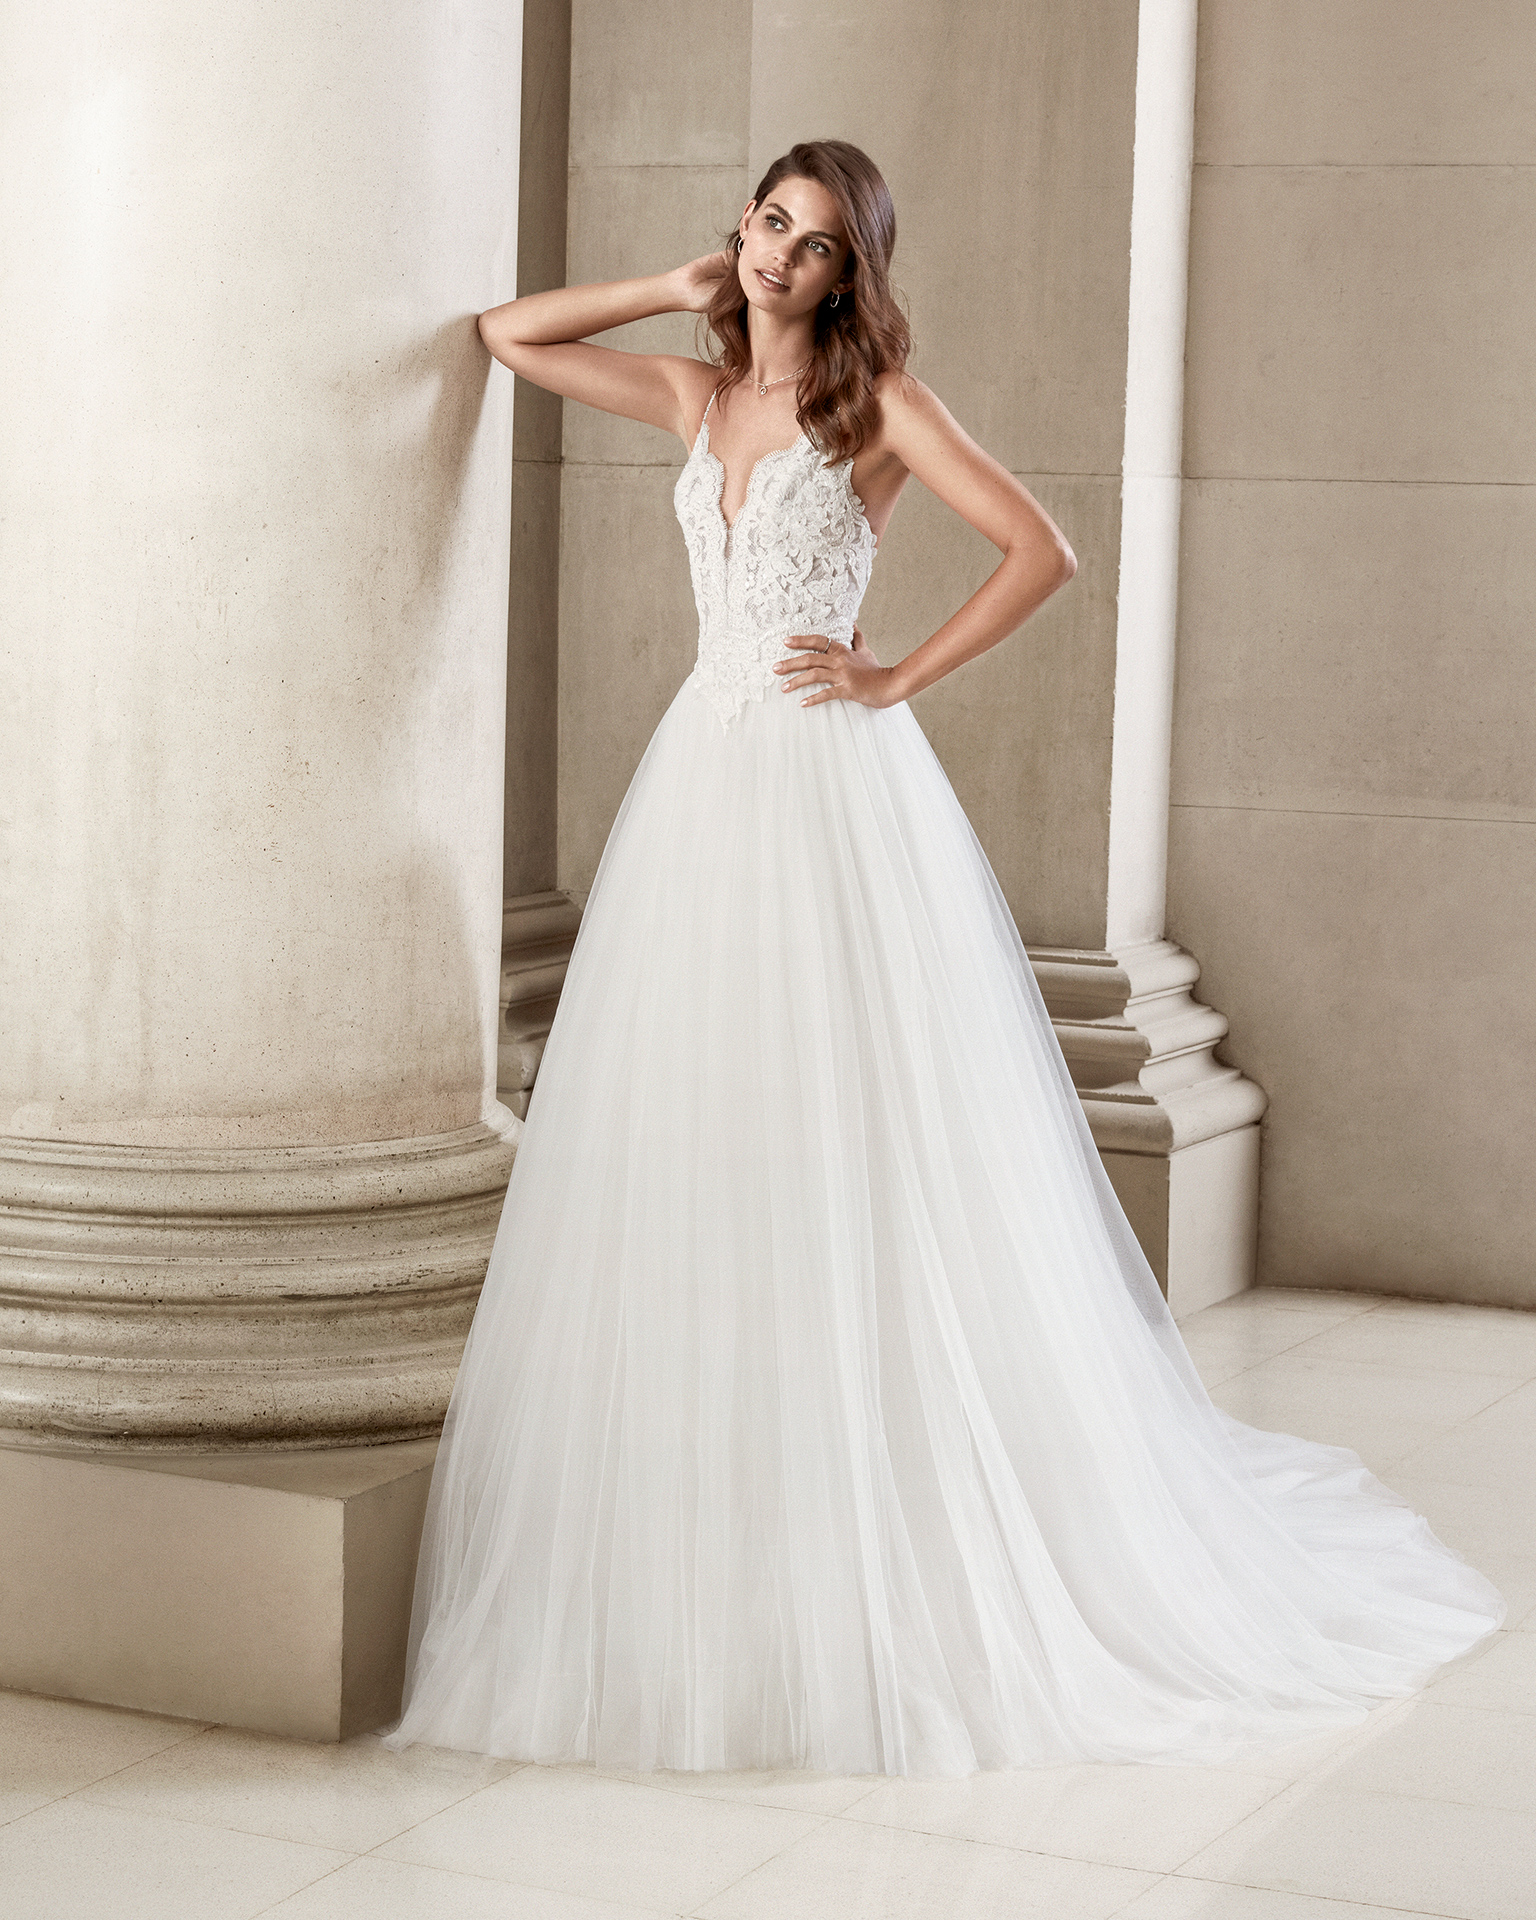 Romantic beaded lace and crepe Georgette wedding dress. With deep-plunge neckline, low back and beaded straps. With tulle overskirt. Available in natural. 2019 ALMA_NOVIA Collection.